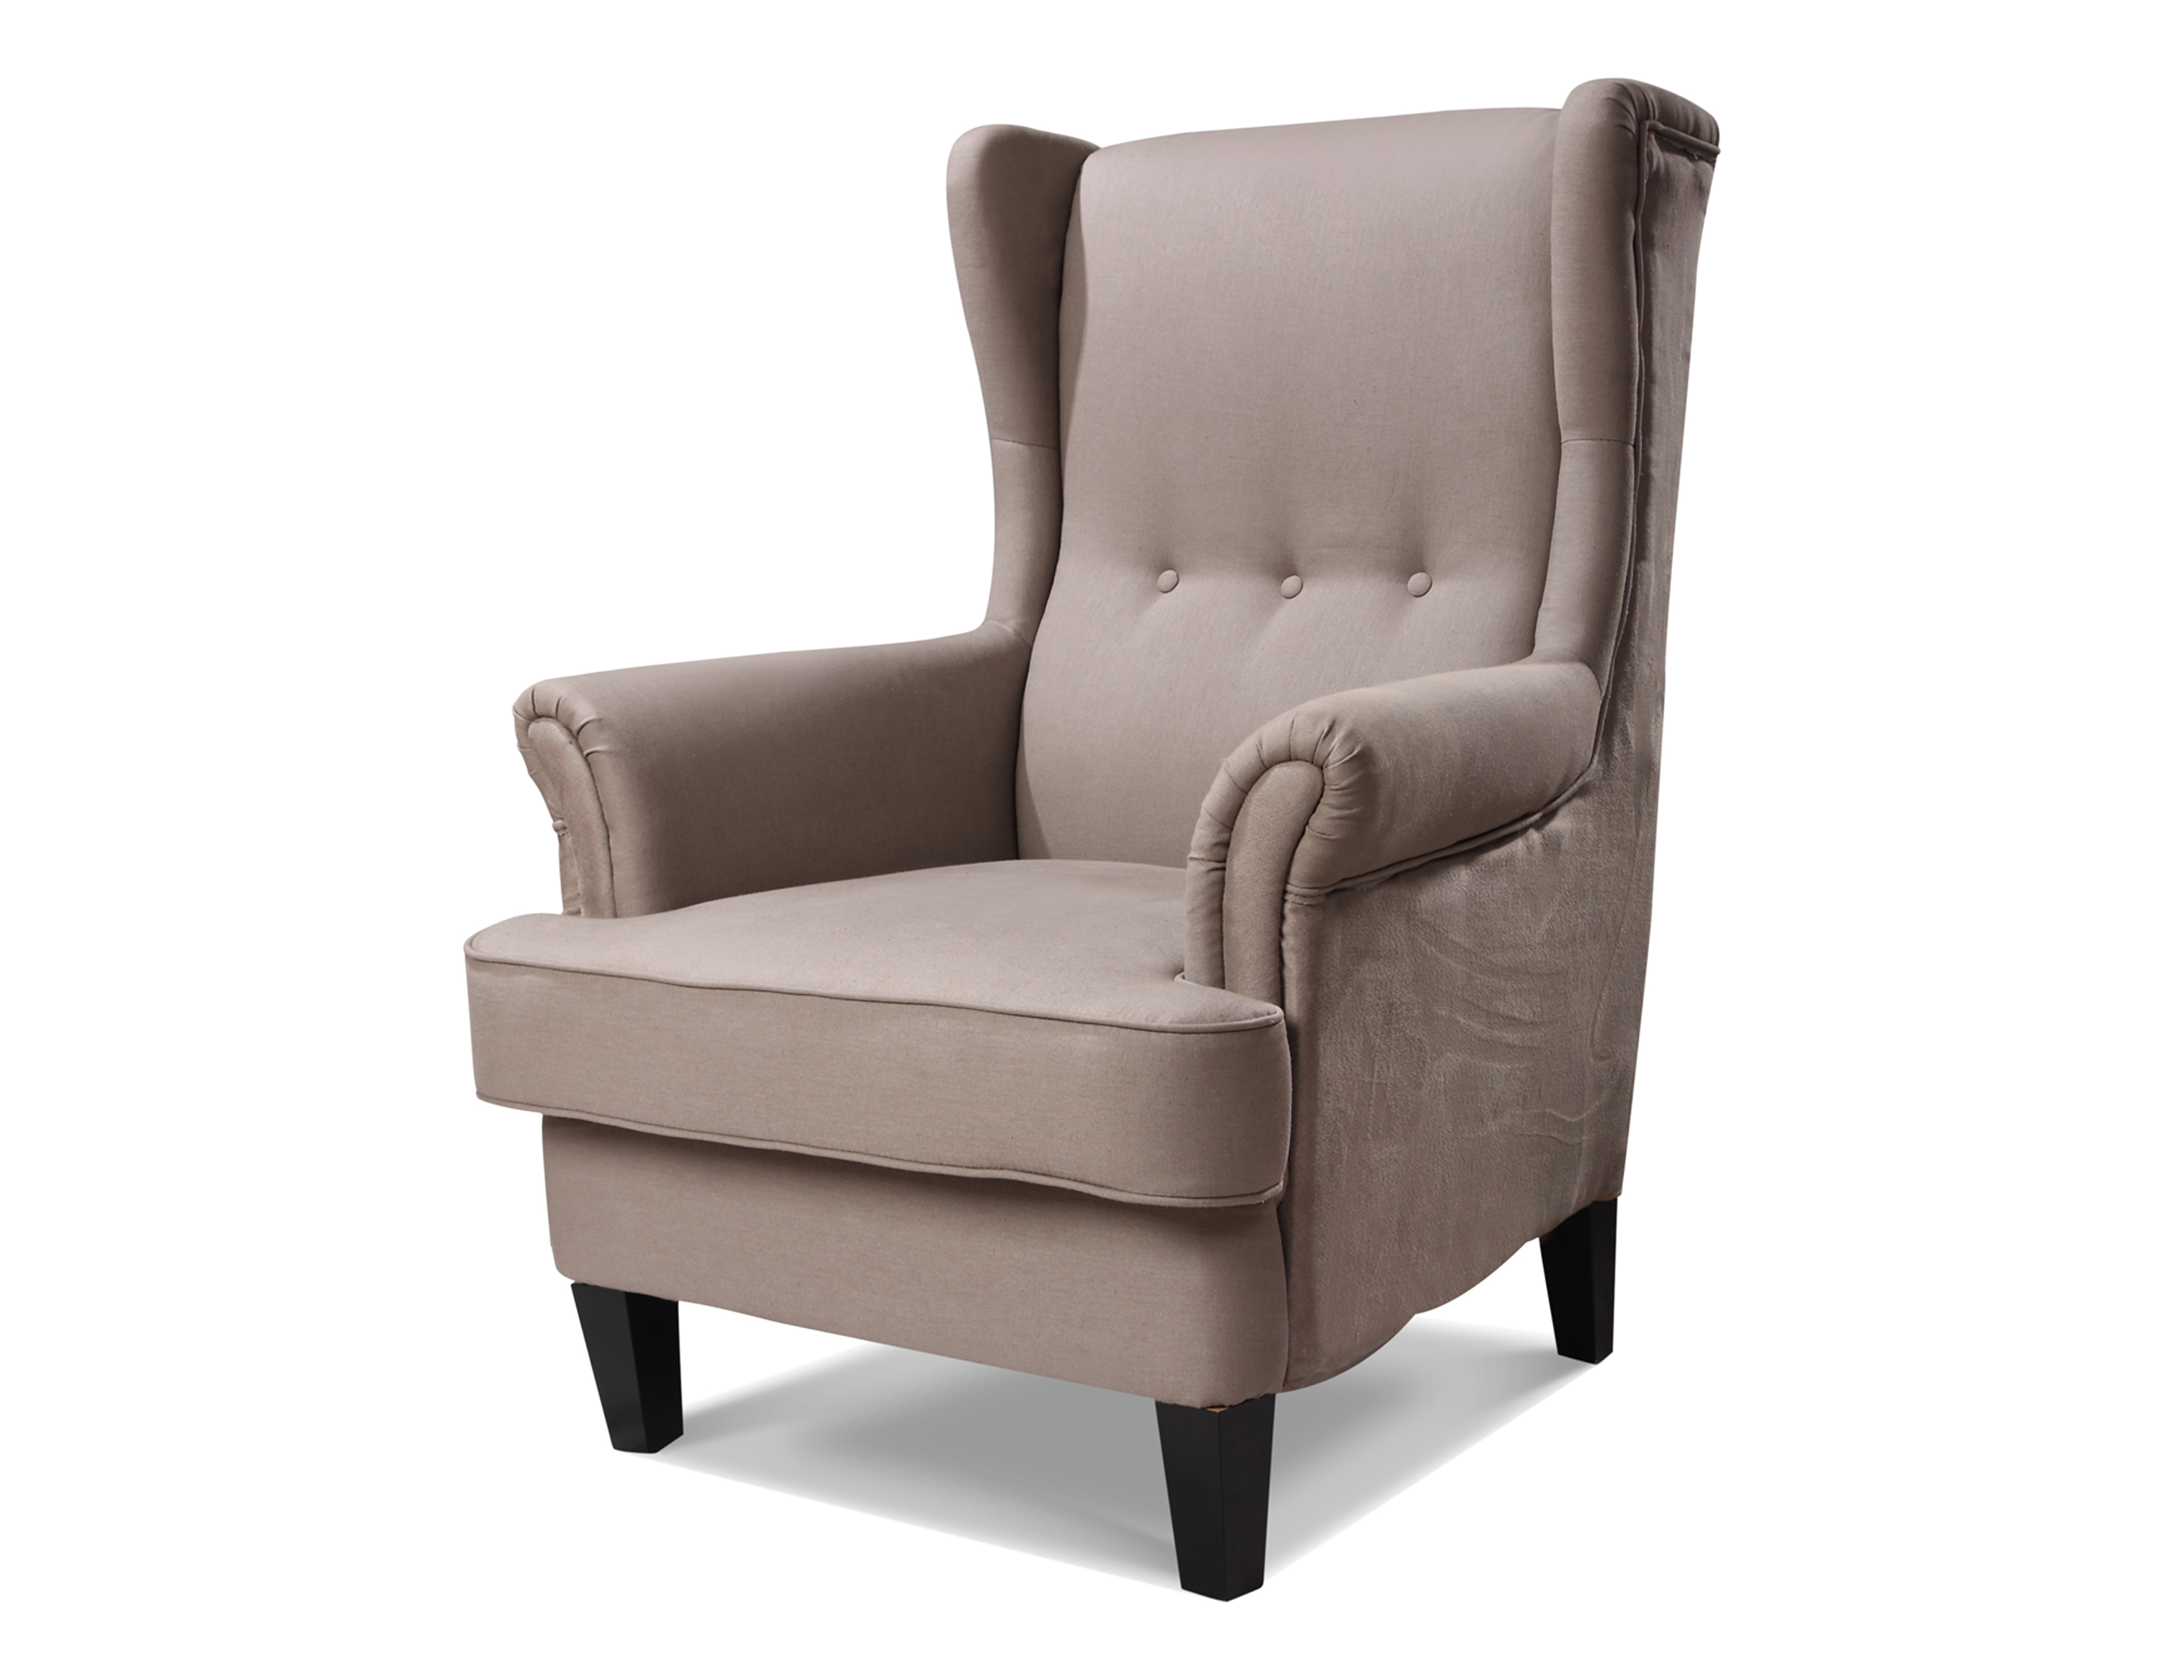 Austin wingback chair upholstered in 'Key West' Linen ...